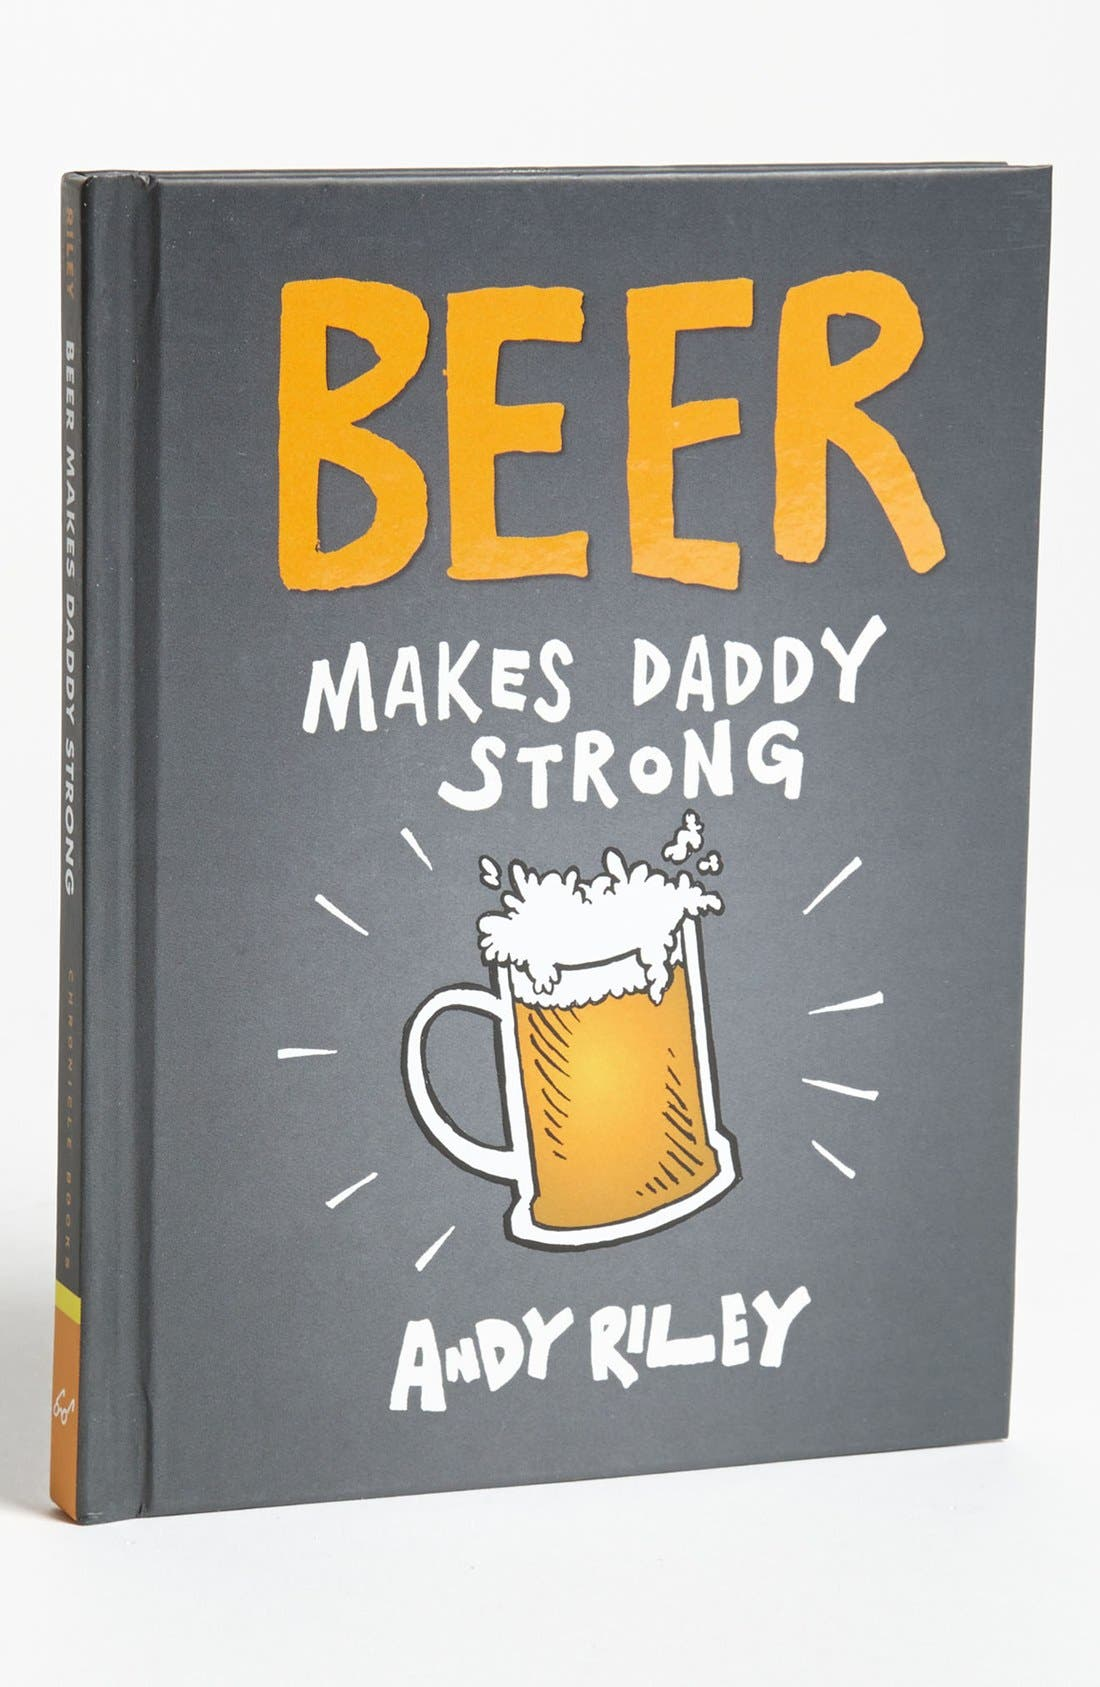 Alternate Image 1 Selected - 'Beer Makes Daddy Stronger' Novelty Book